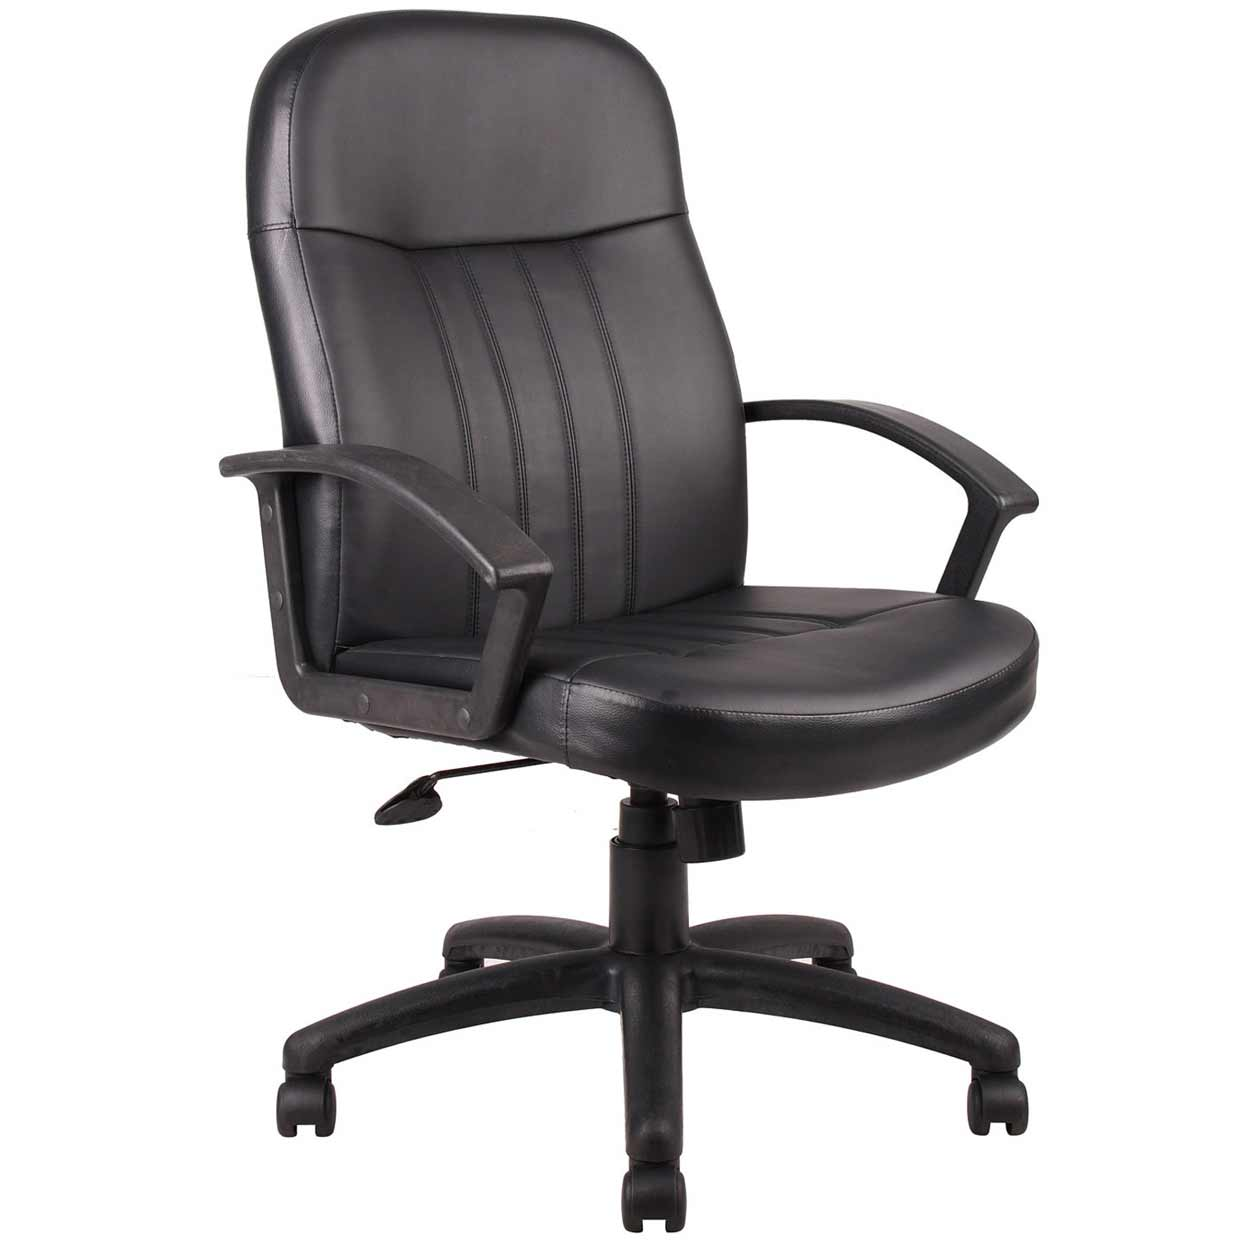 office chairs ergonomic office chairs with lumbar support